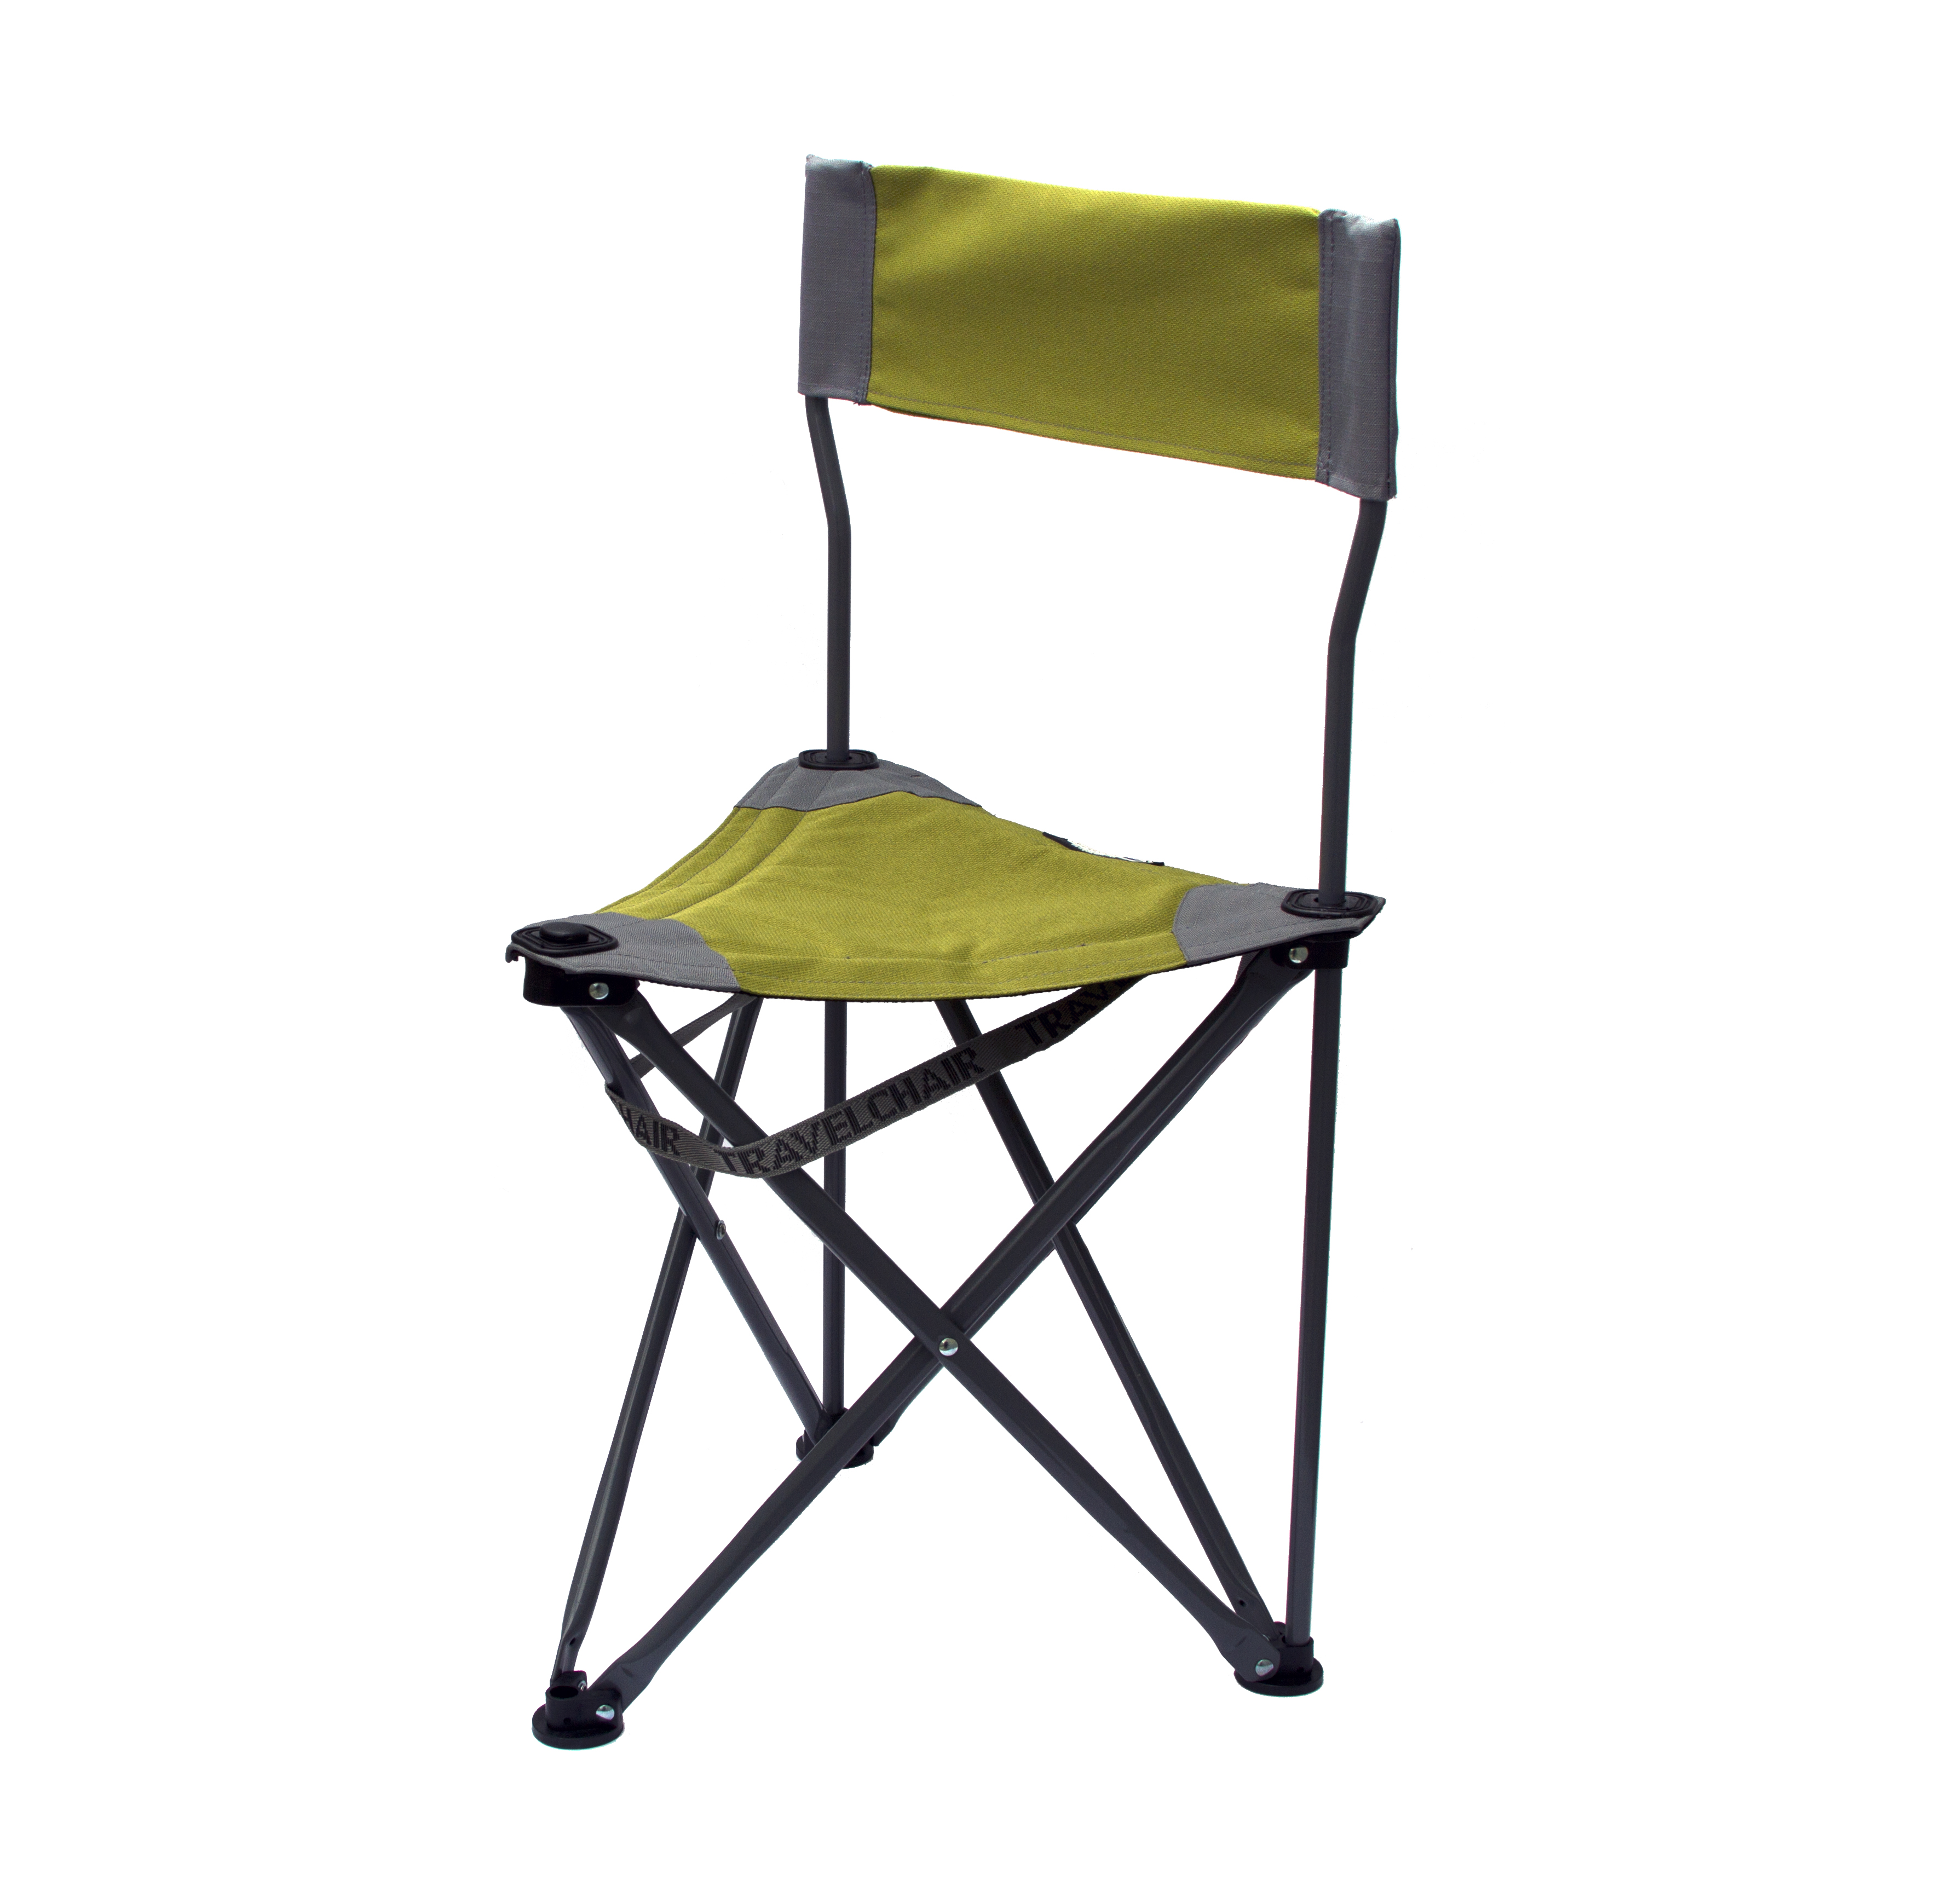 travel chair big bubba covers south wales ultimate slacker 2 folding green